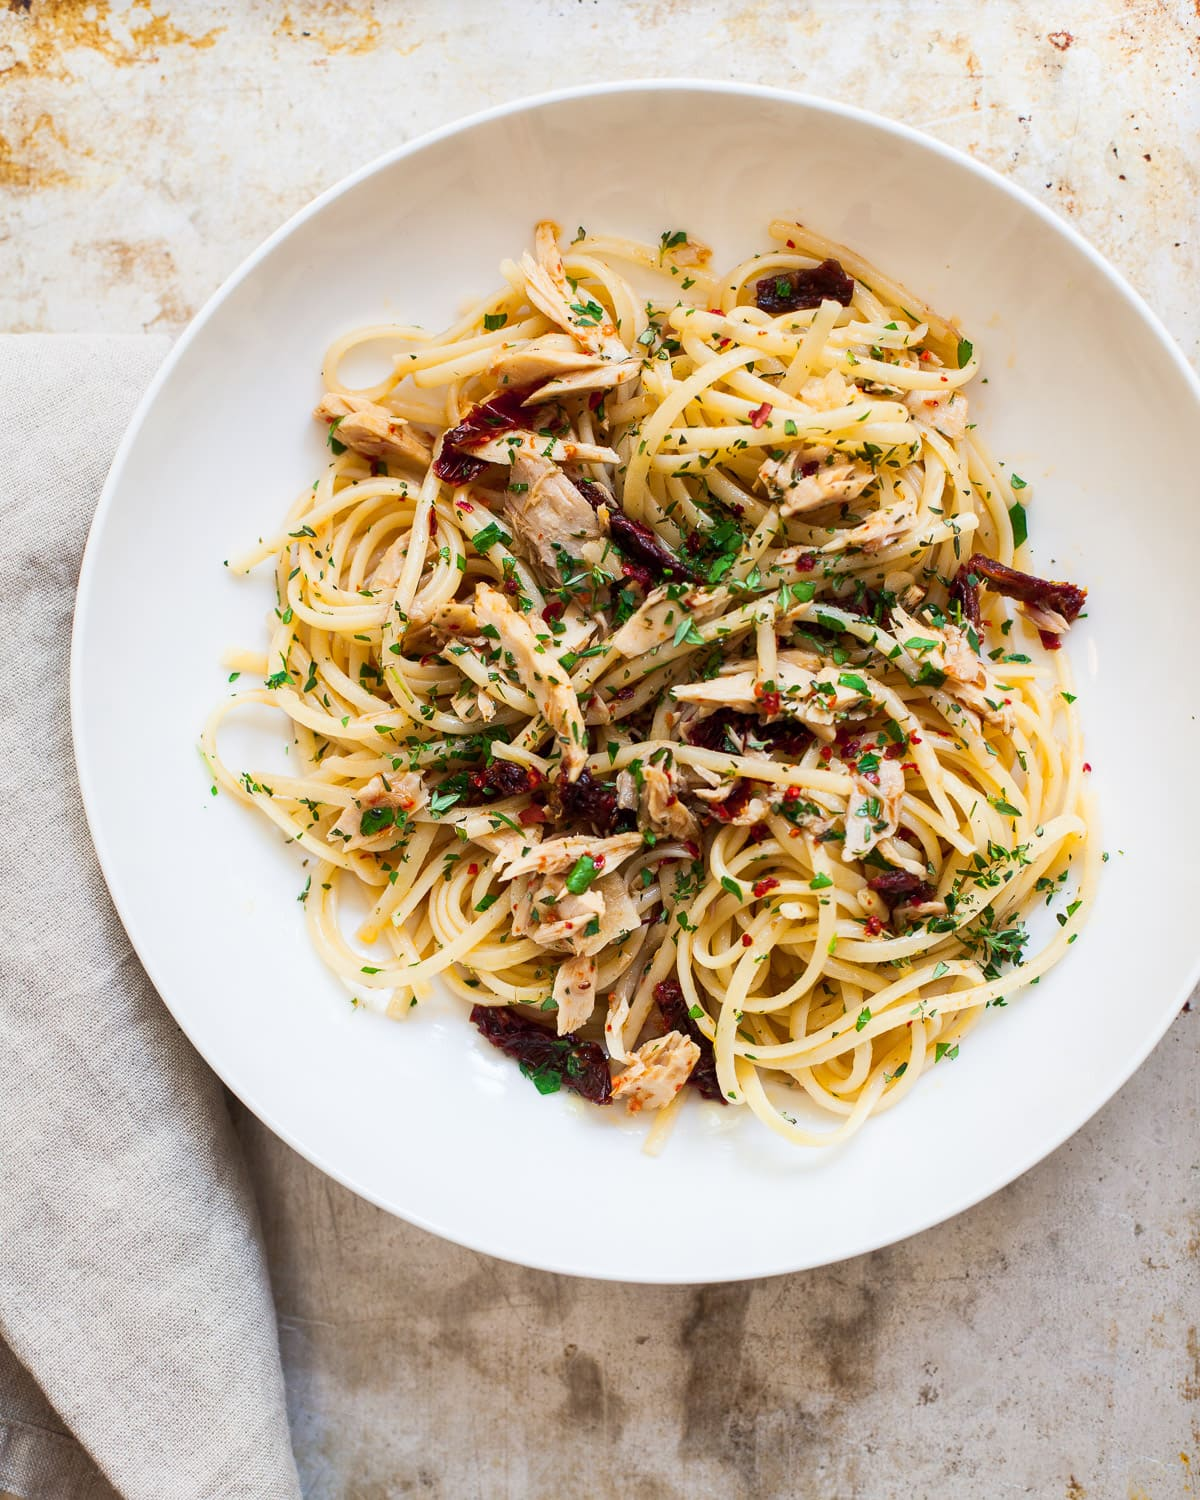 tuna linguine with spicy garlic and olive oil sauce | Familystyle Food